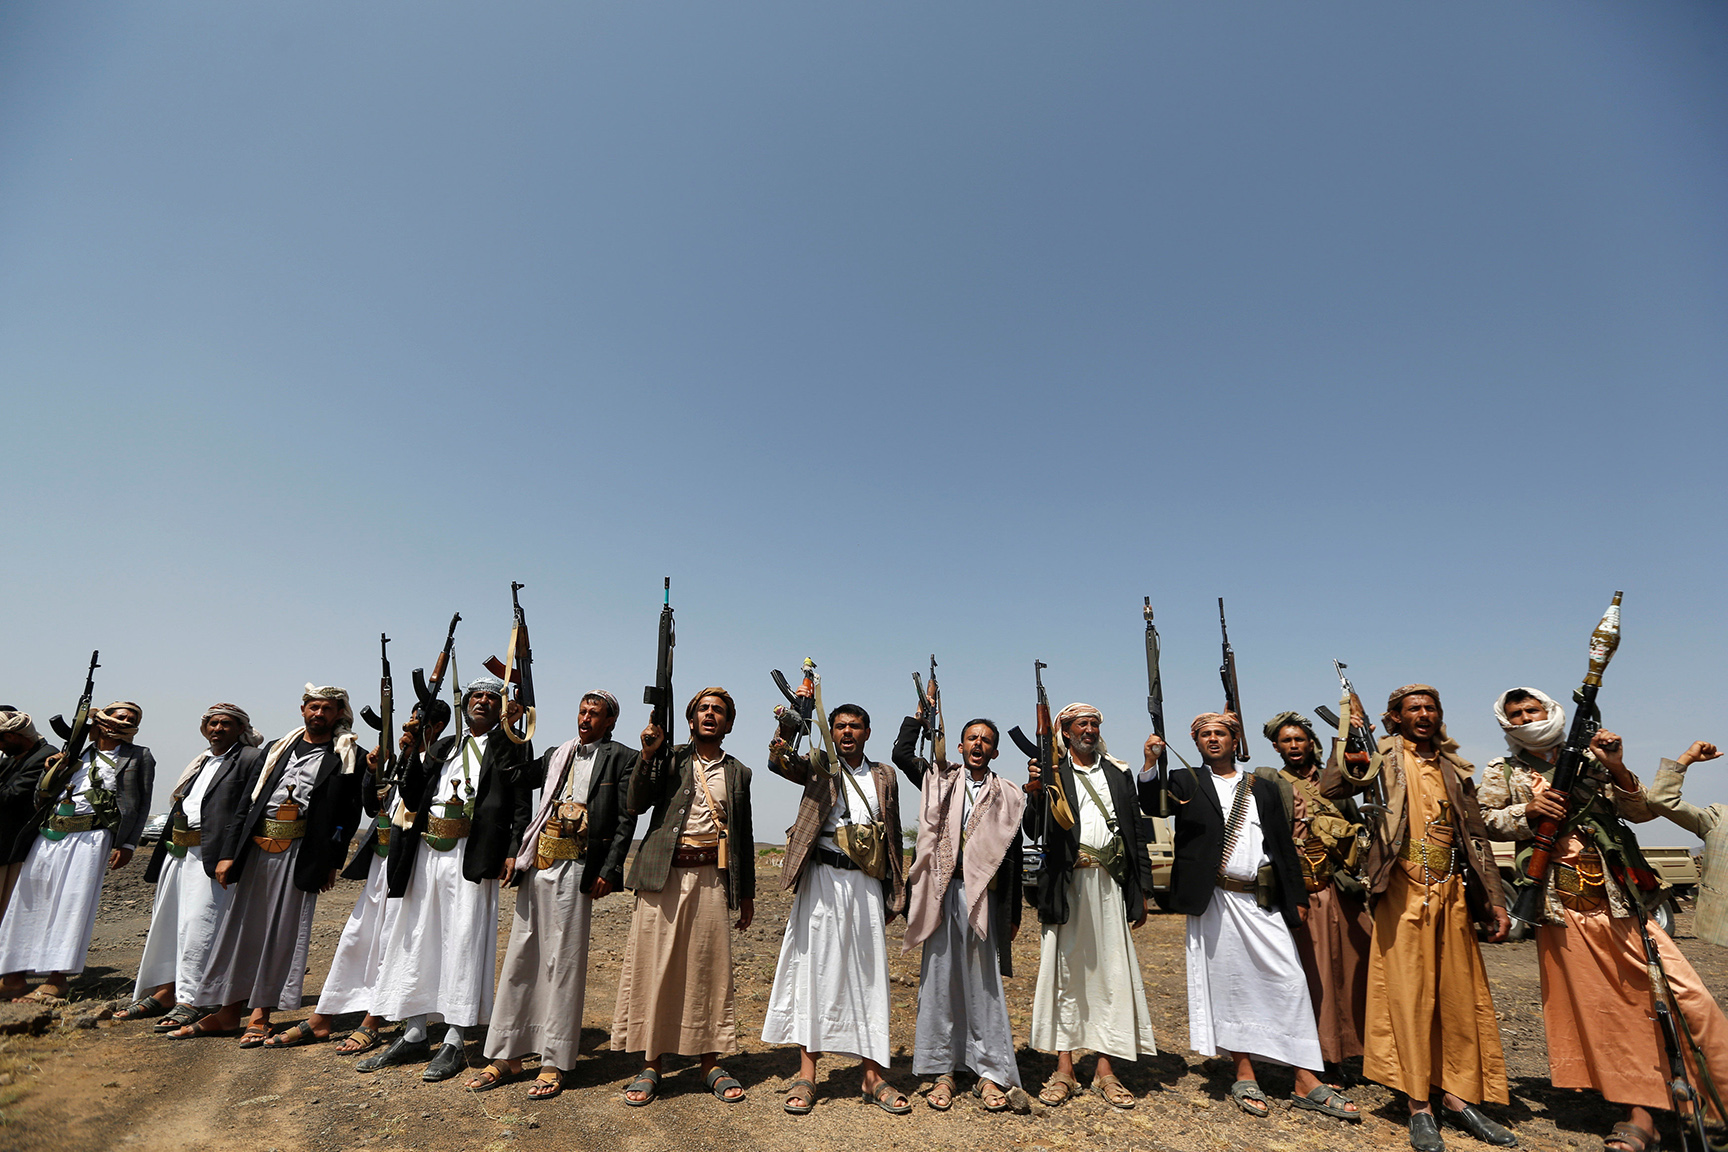 Tribesmen loyal to the Houthi movement hold up their rifles as they shout slogans during a pro-Houthi tribal gathering in a rural area near Sanaa, Yemen